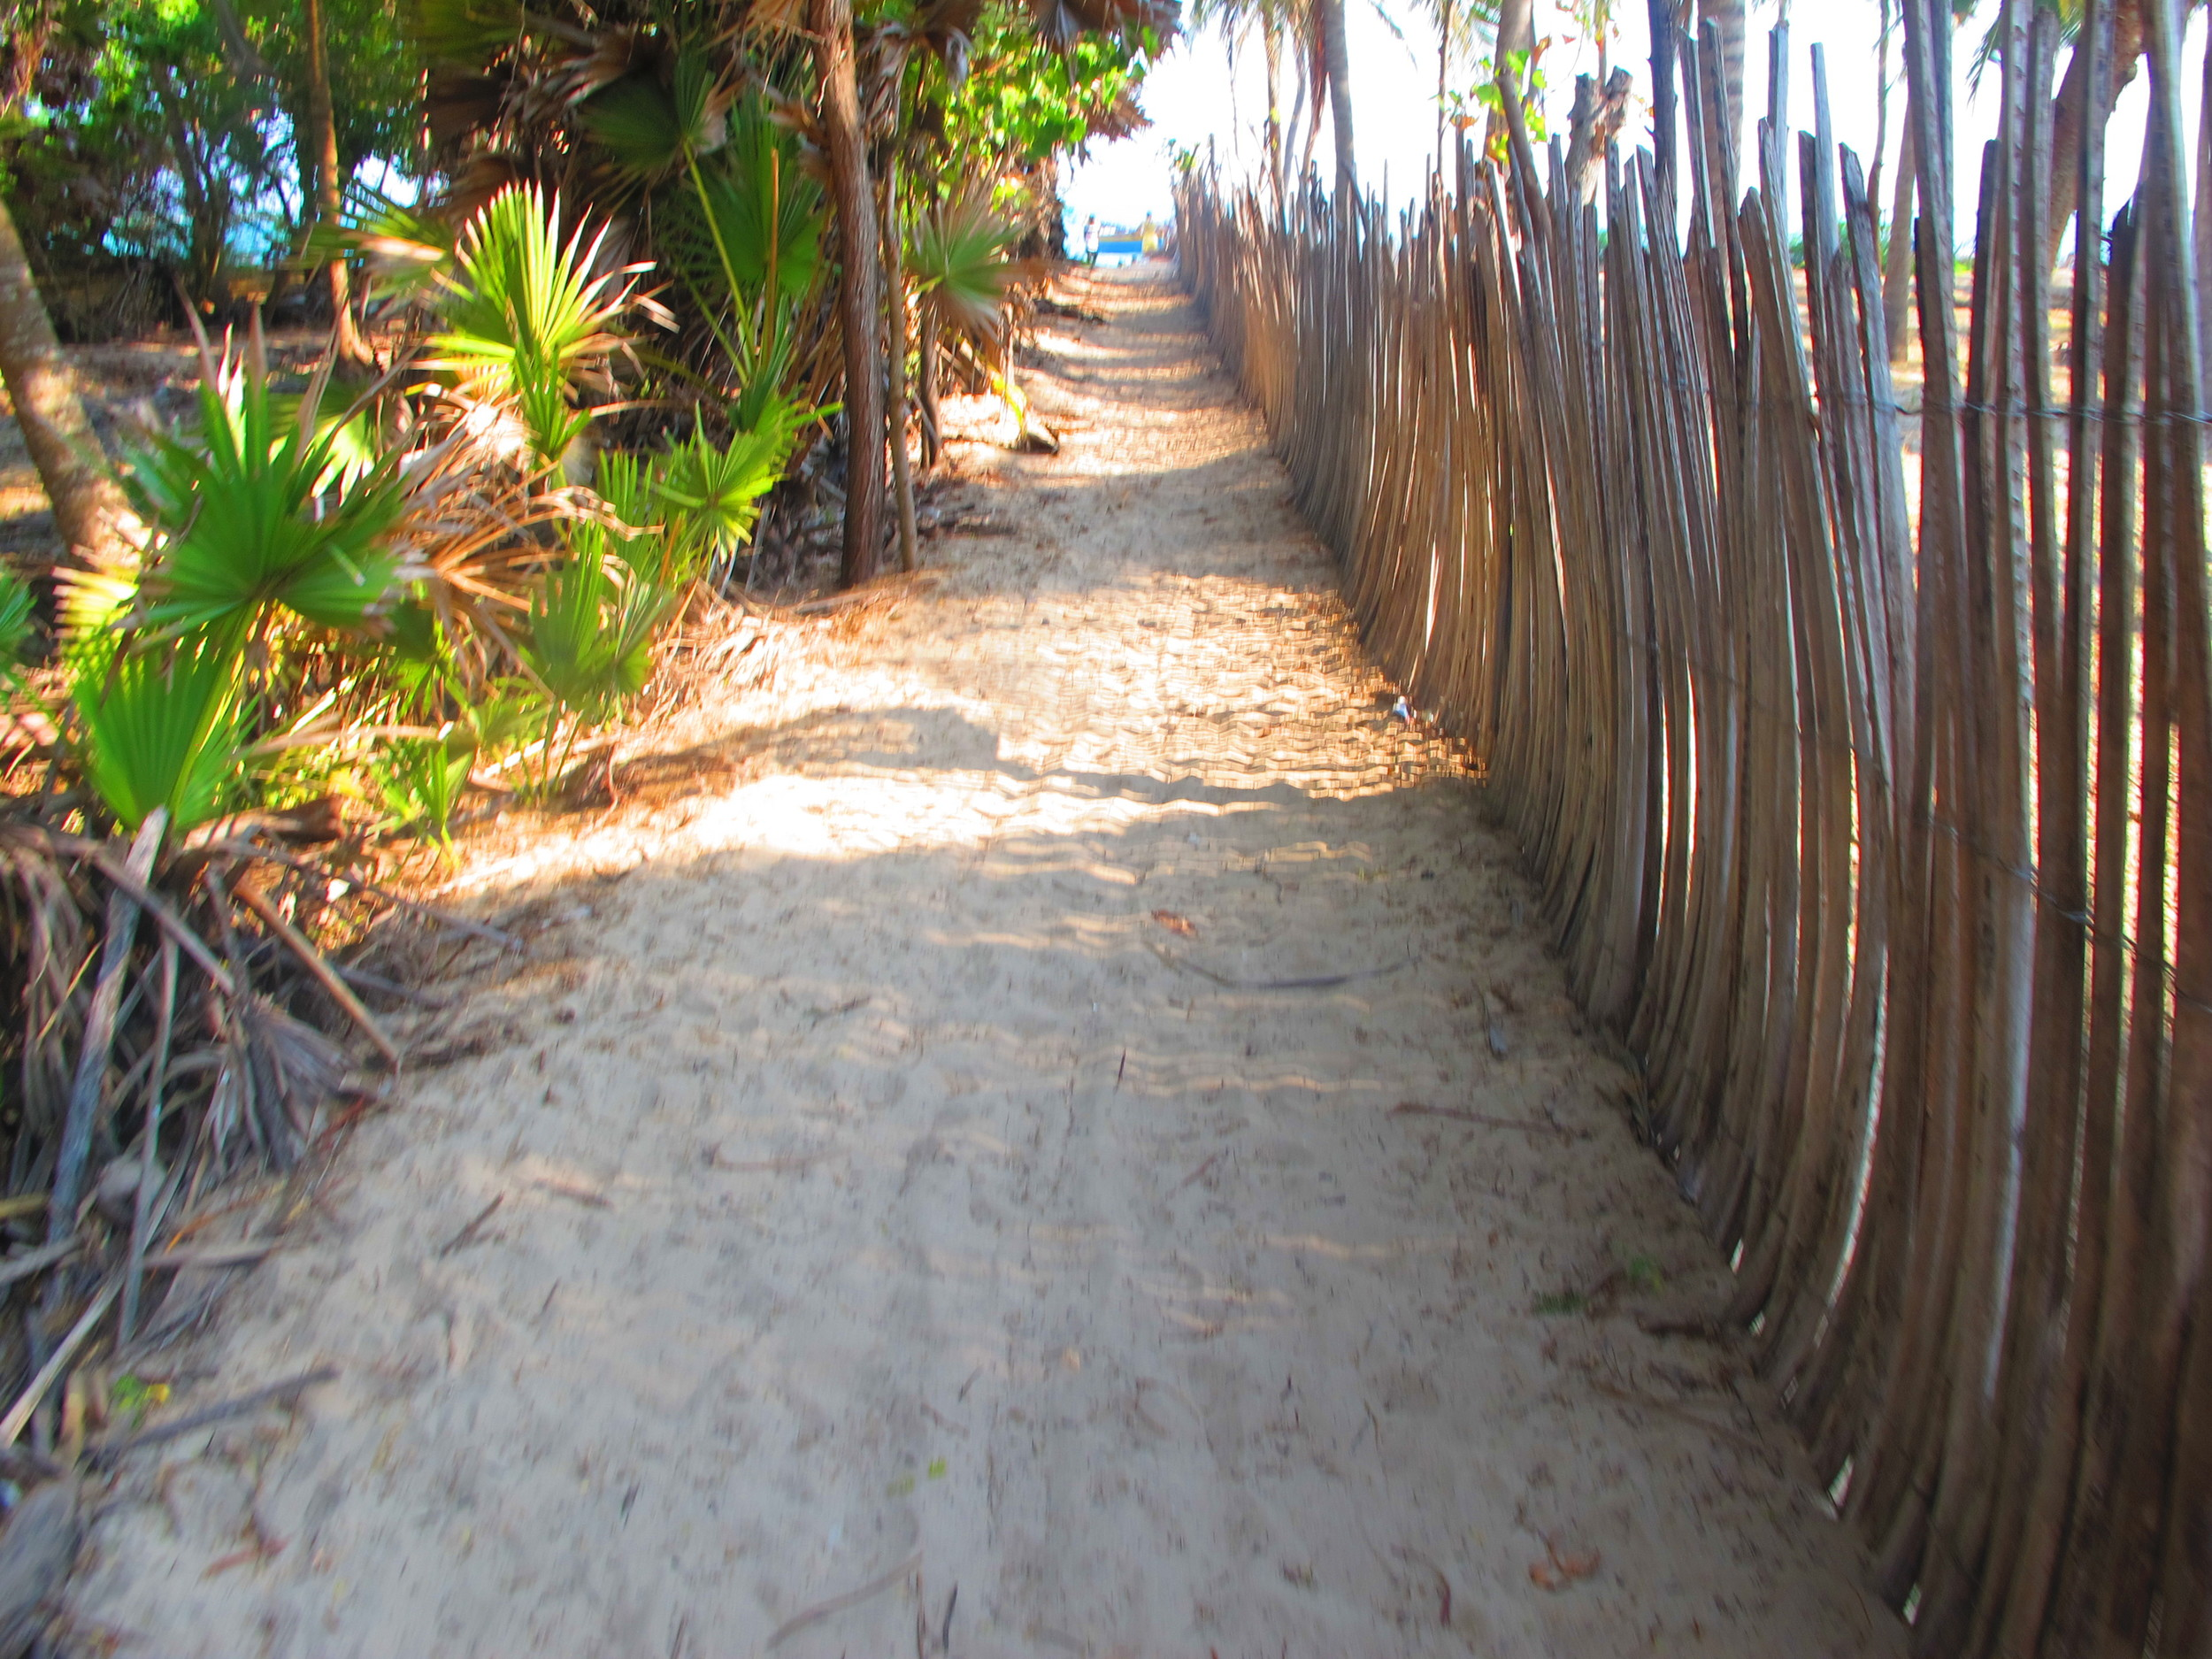 All roads lead to the beach #LifeinthedeepSouth